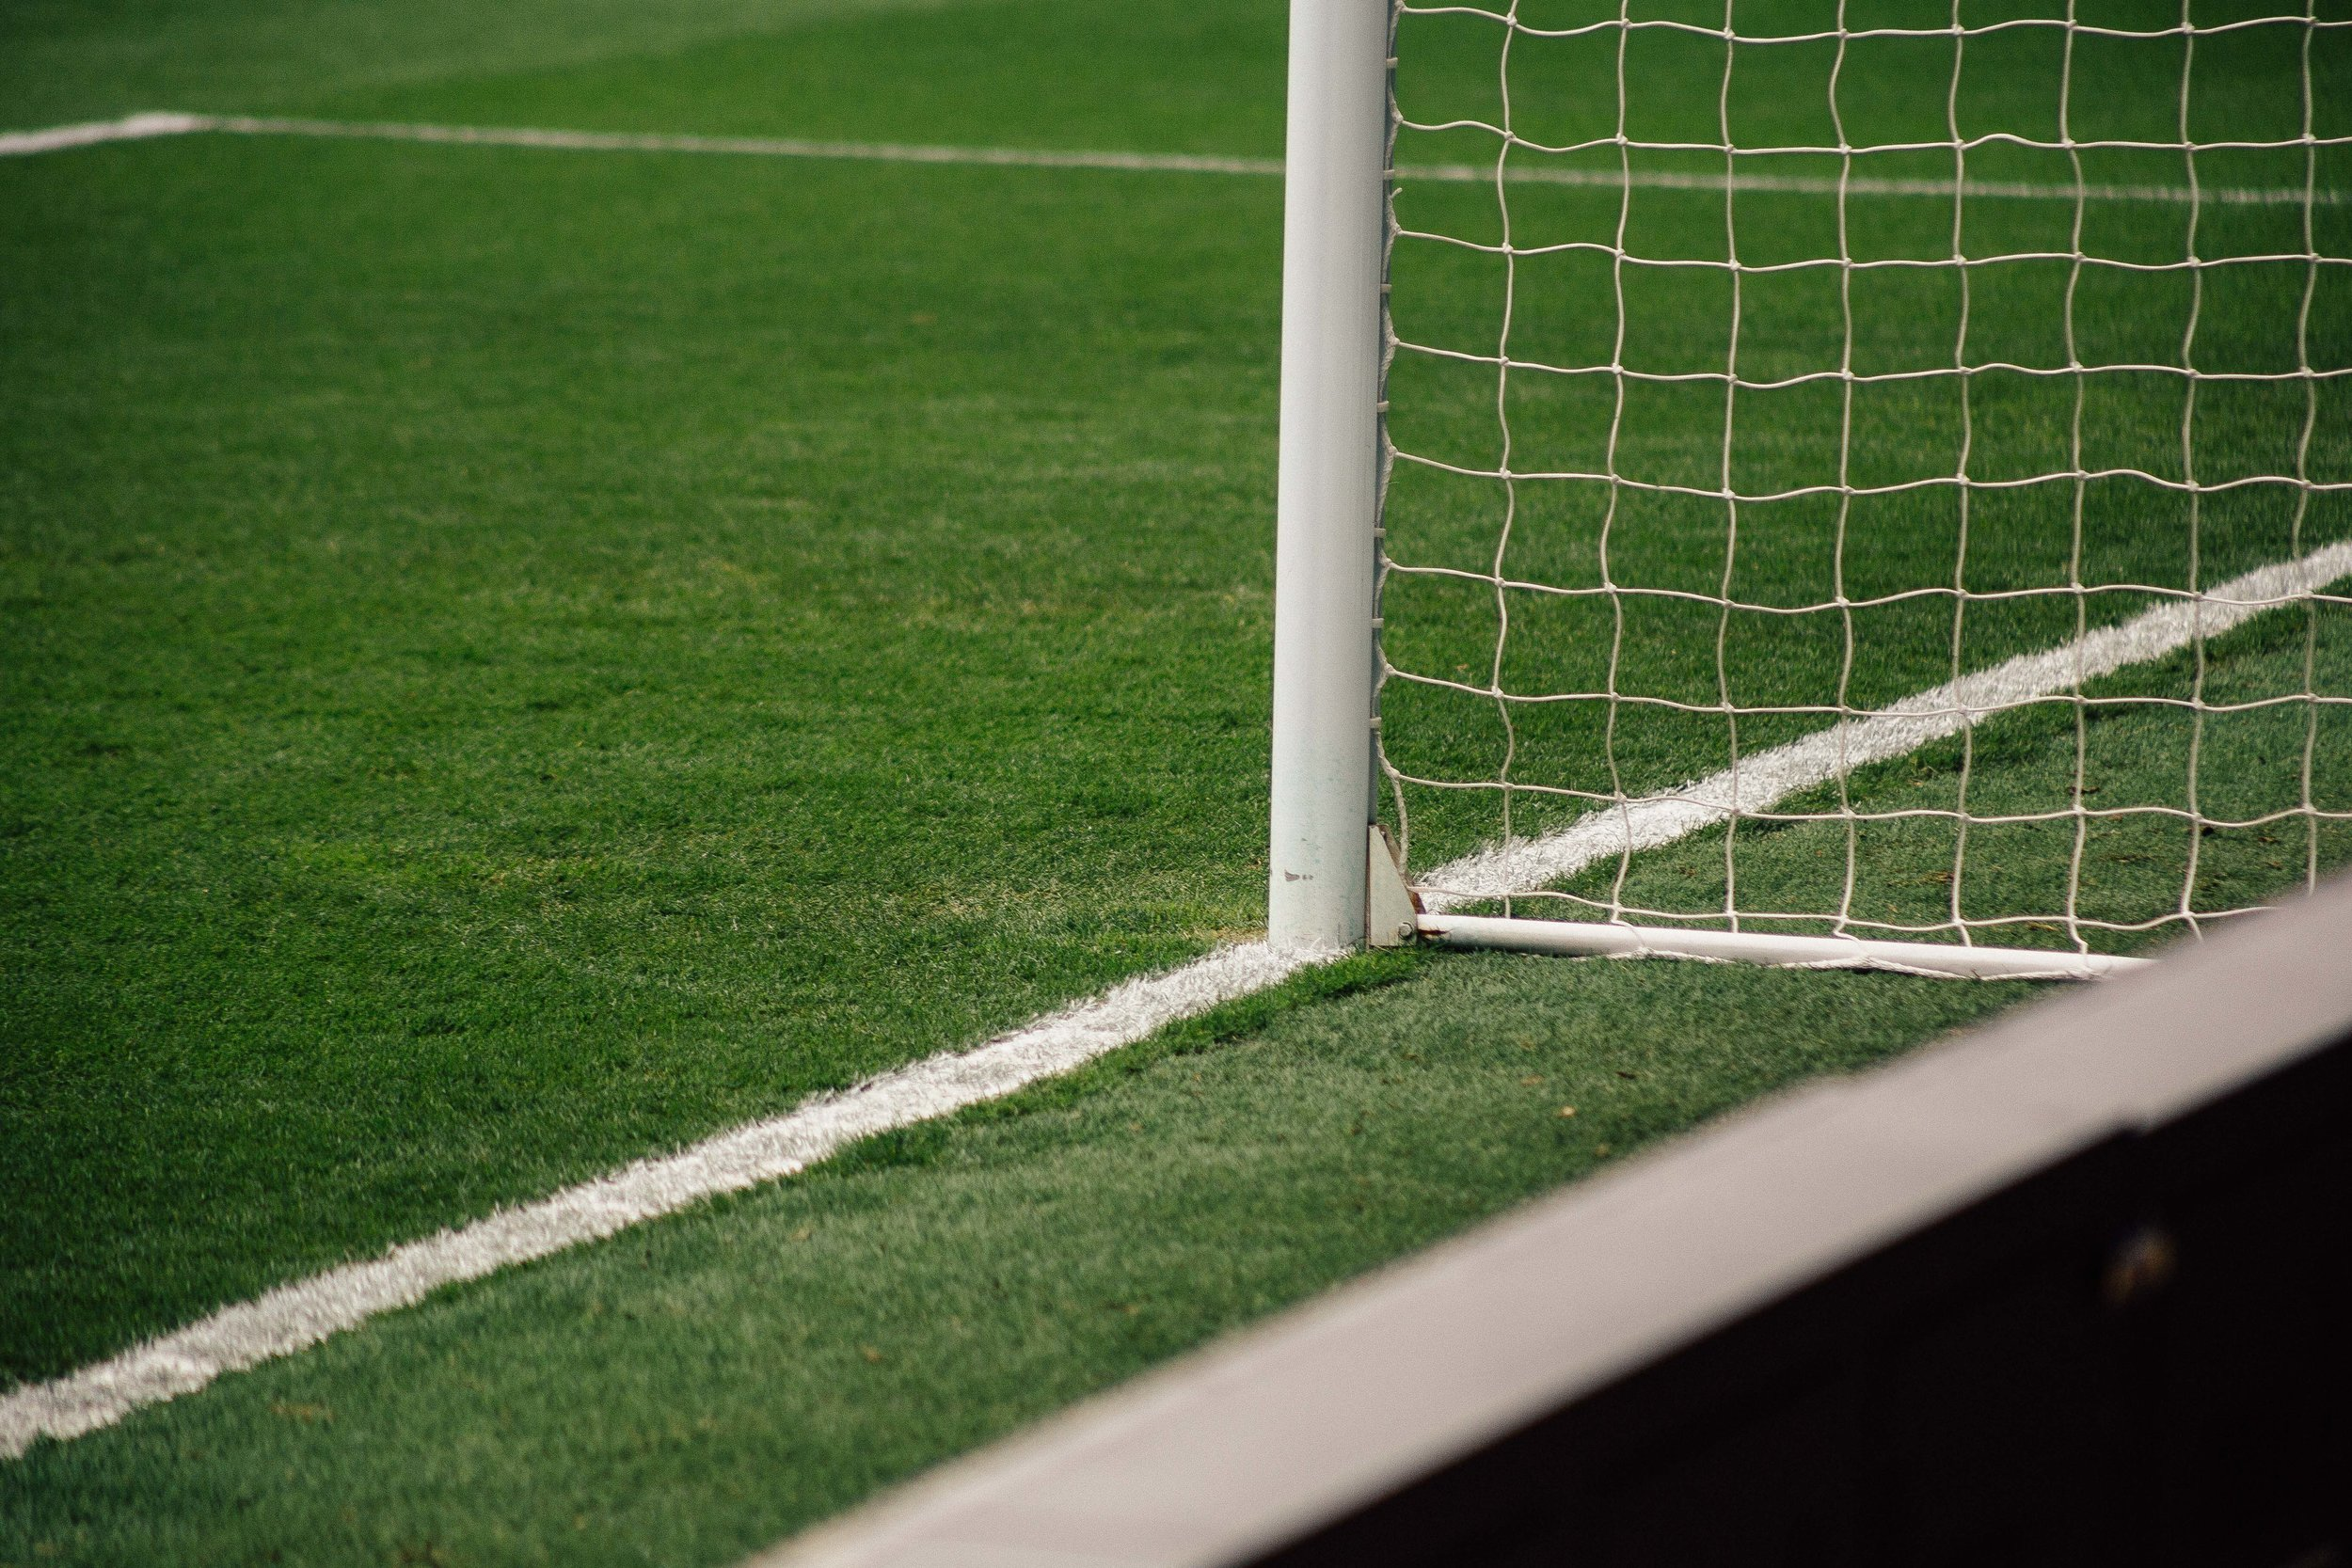 Plastic pitch: Budweiser turns waste cups into playing field in Russia -